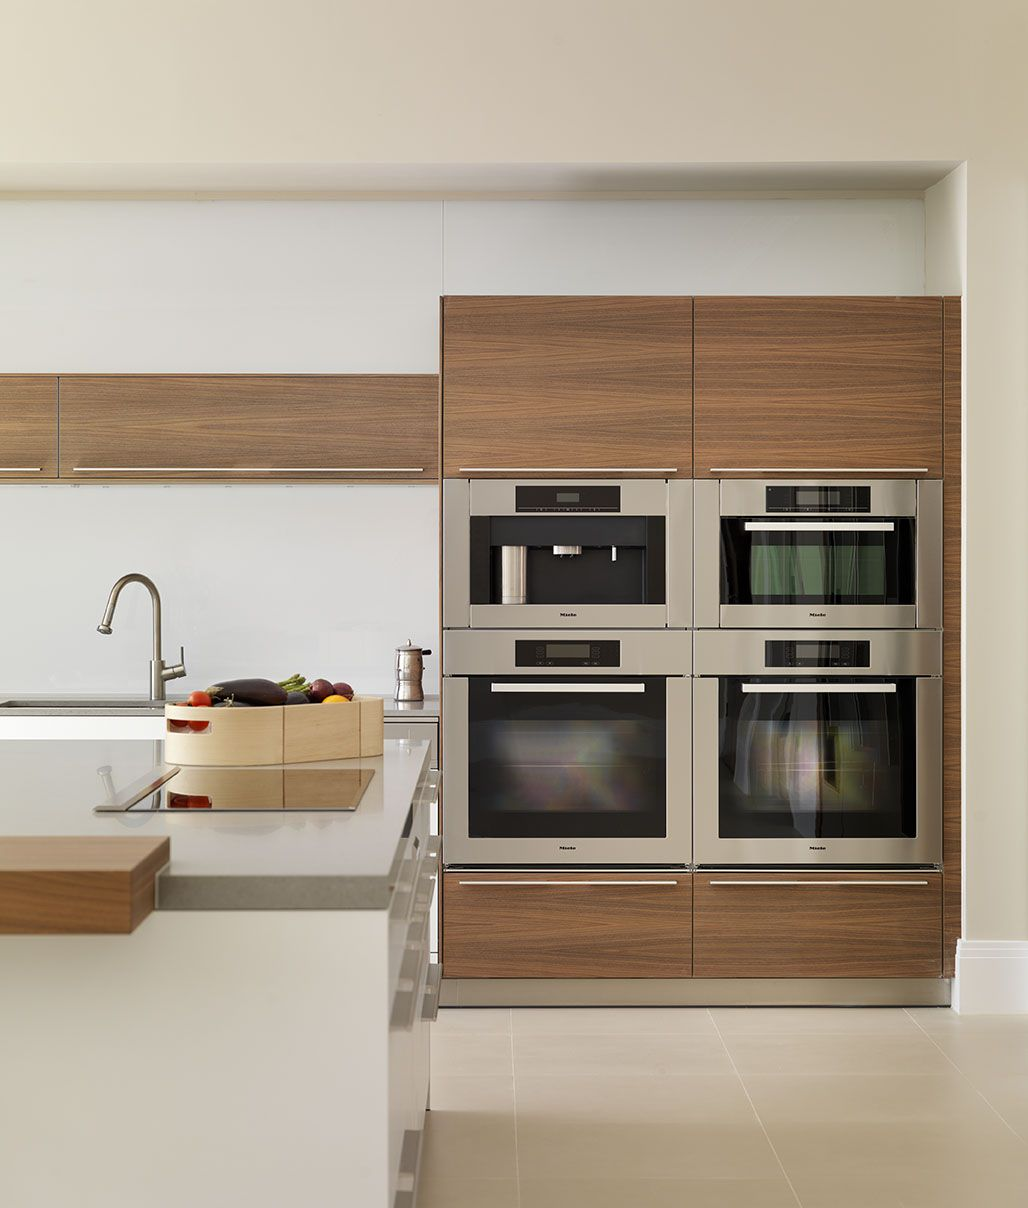 Kitchen Oven Cabinets: Contemporary White And Wood Kitchen